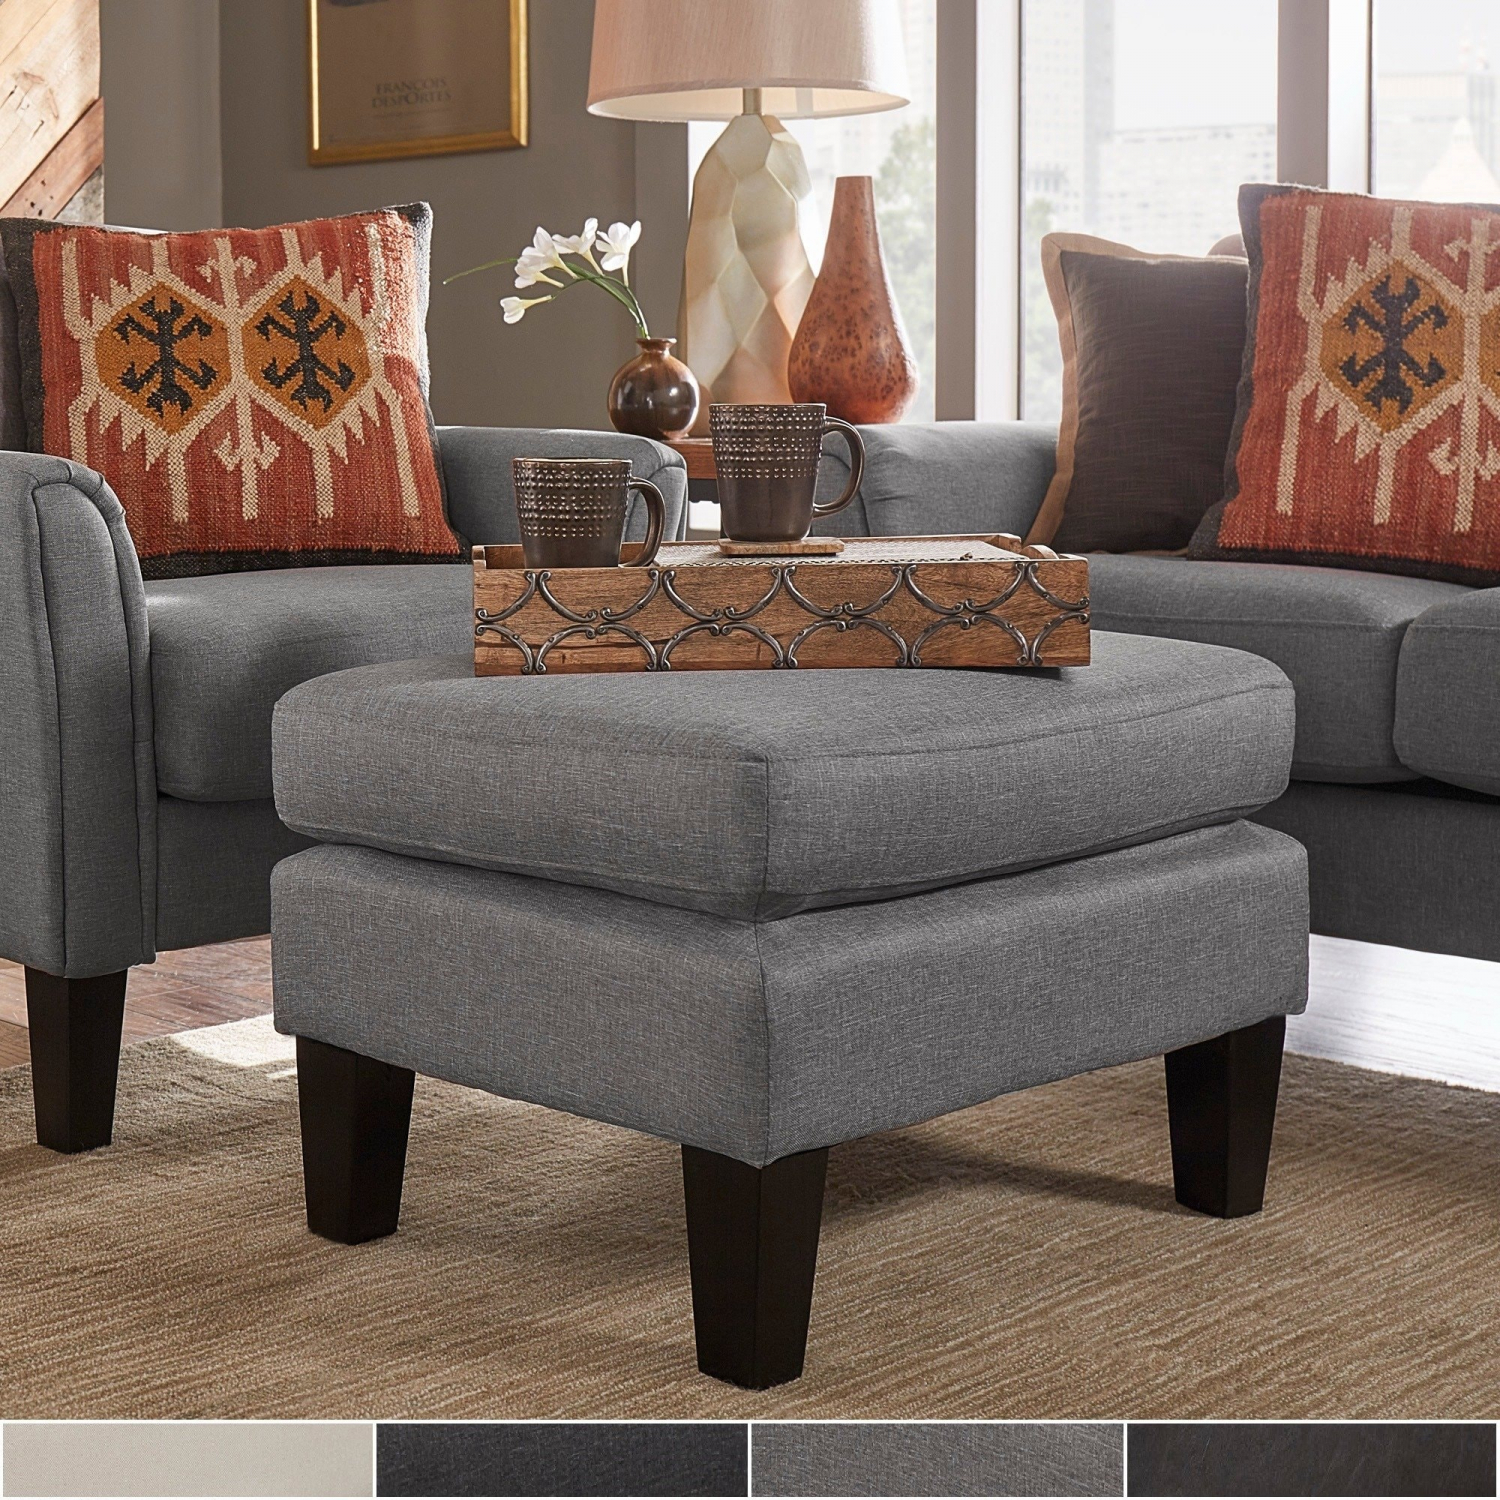 Details About Uptown Modern Ottoman By Inspire Q Classic